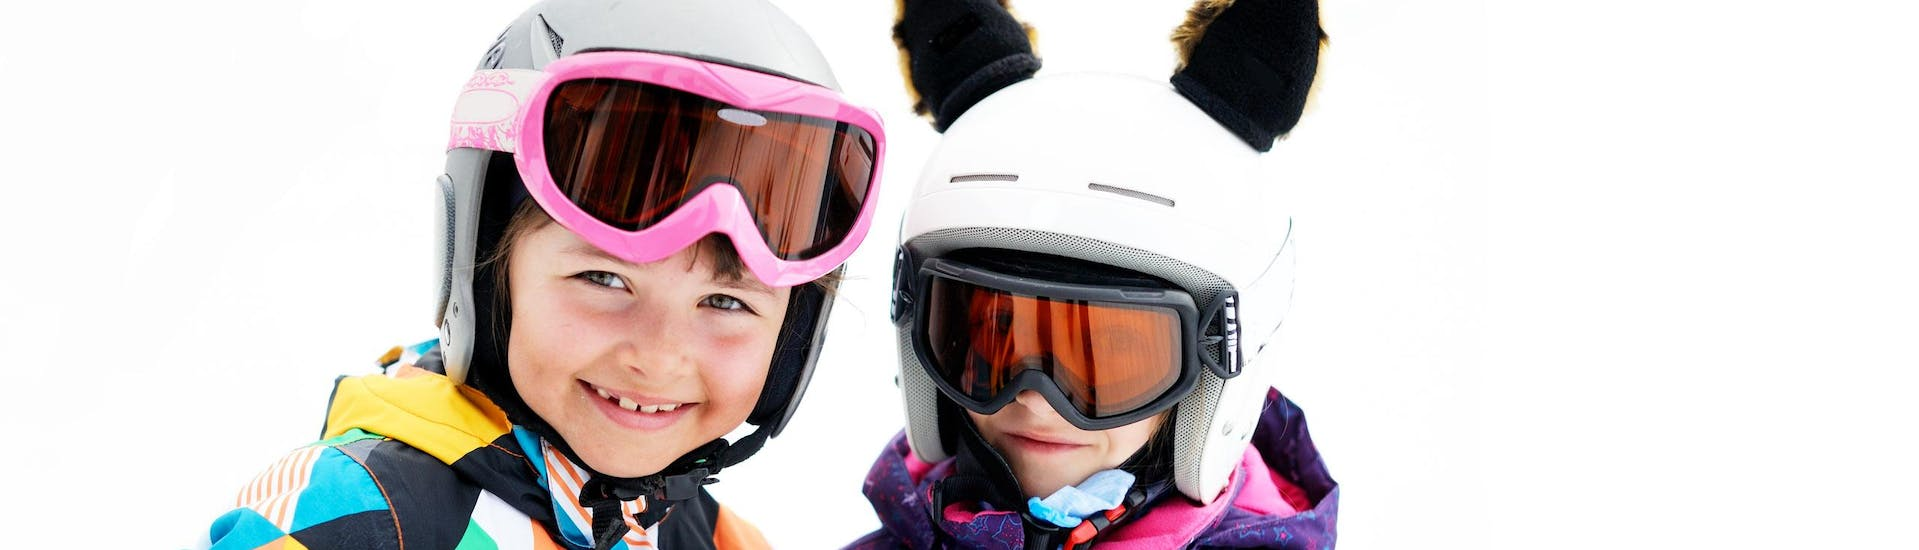 Two young children smiling at the camera during one of the Private Ski Lessons for Kids for All Levels organised by Scuola di Sci Vigo di Fassa.